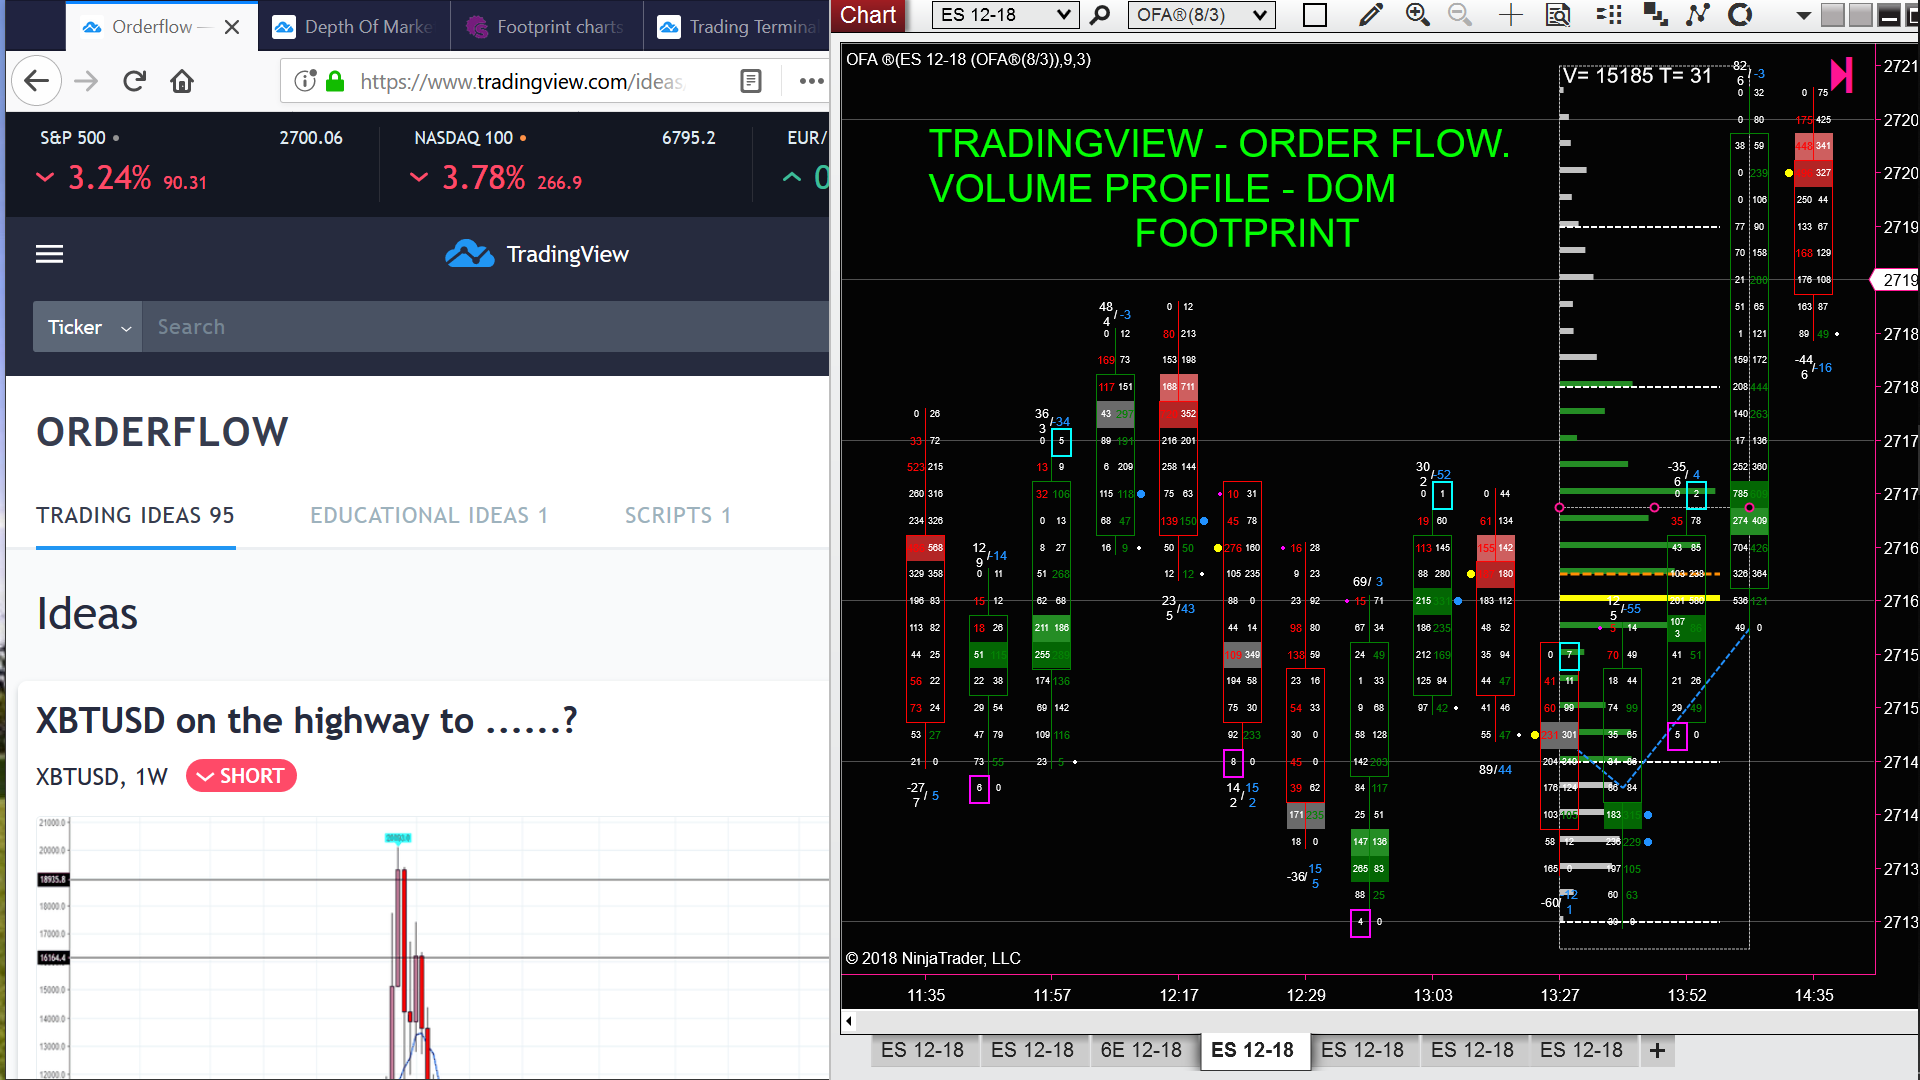 Tradingview Order Fow - DOM & Footprint